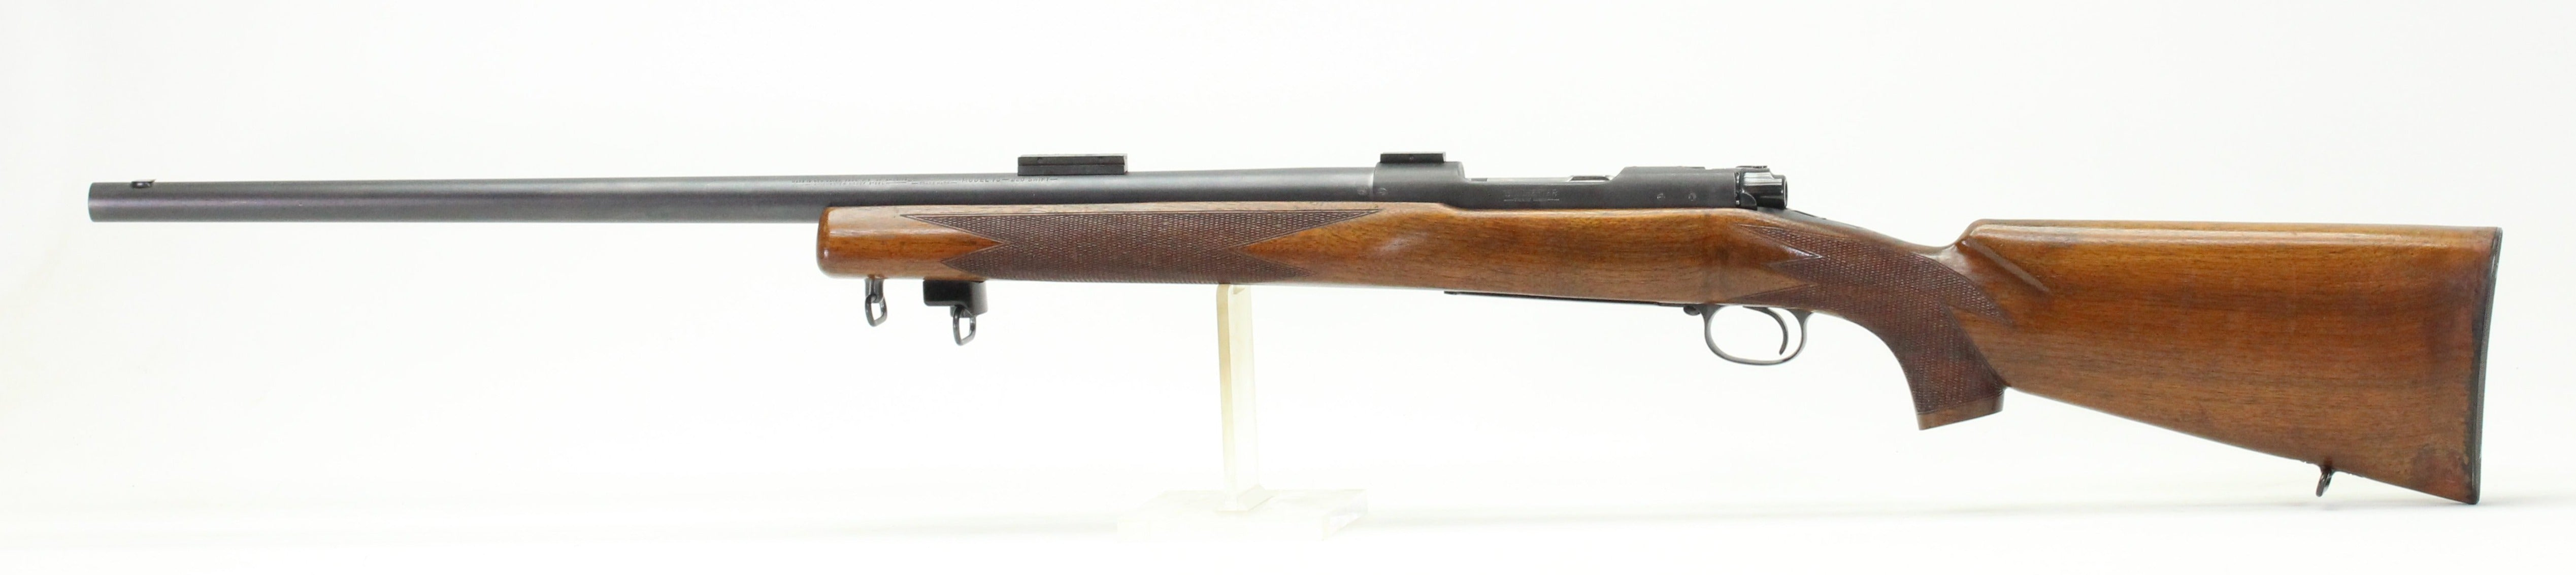 .220 Swift Target Rifle - 1954